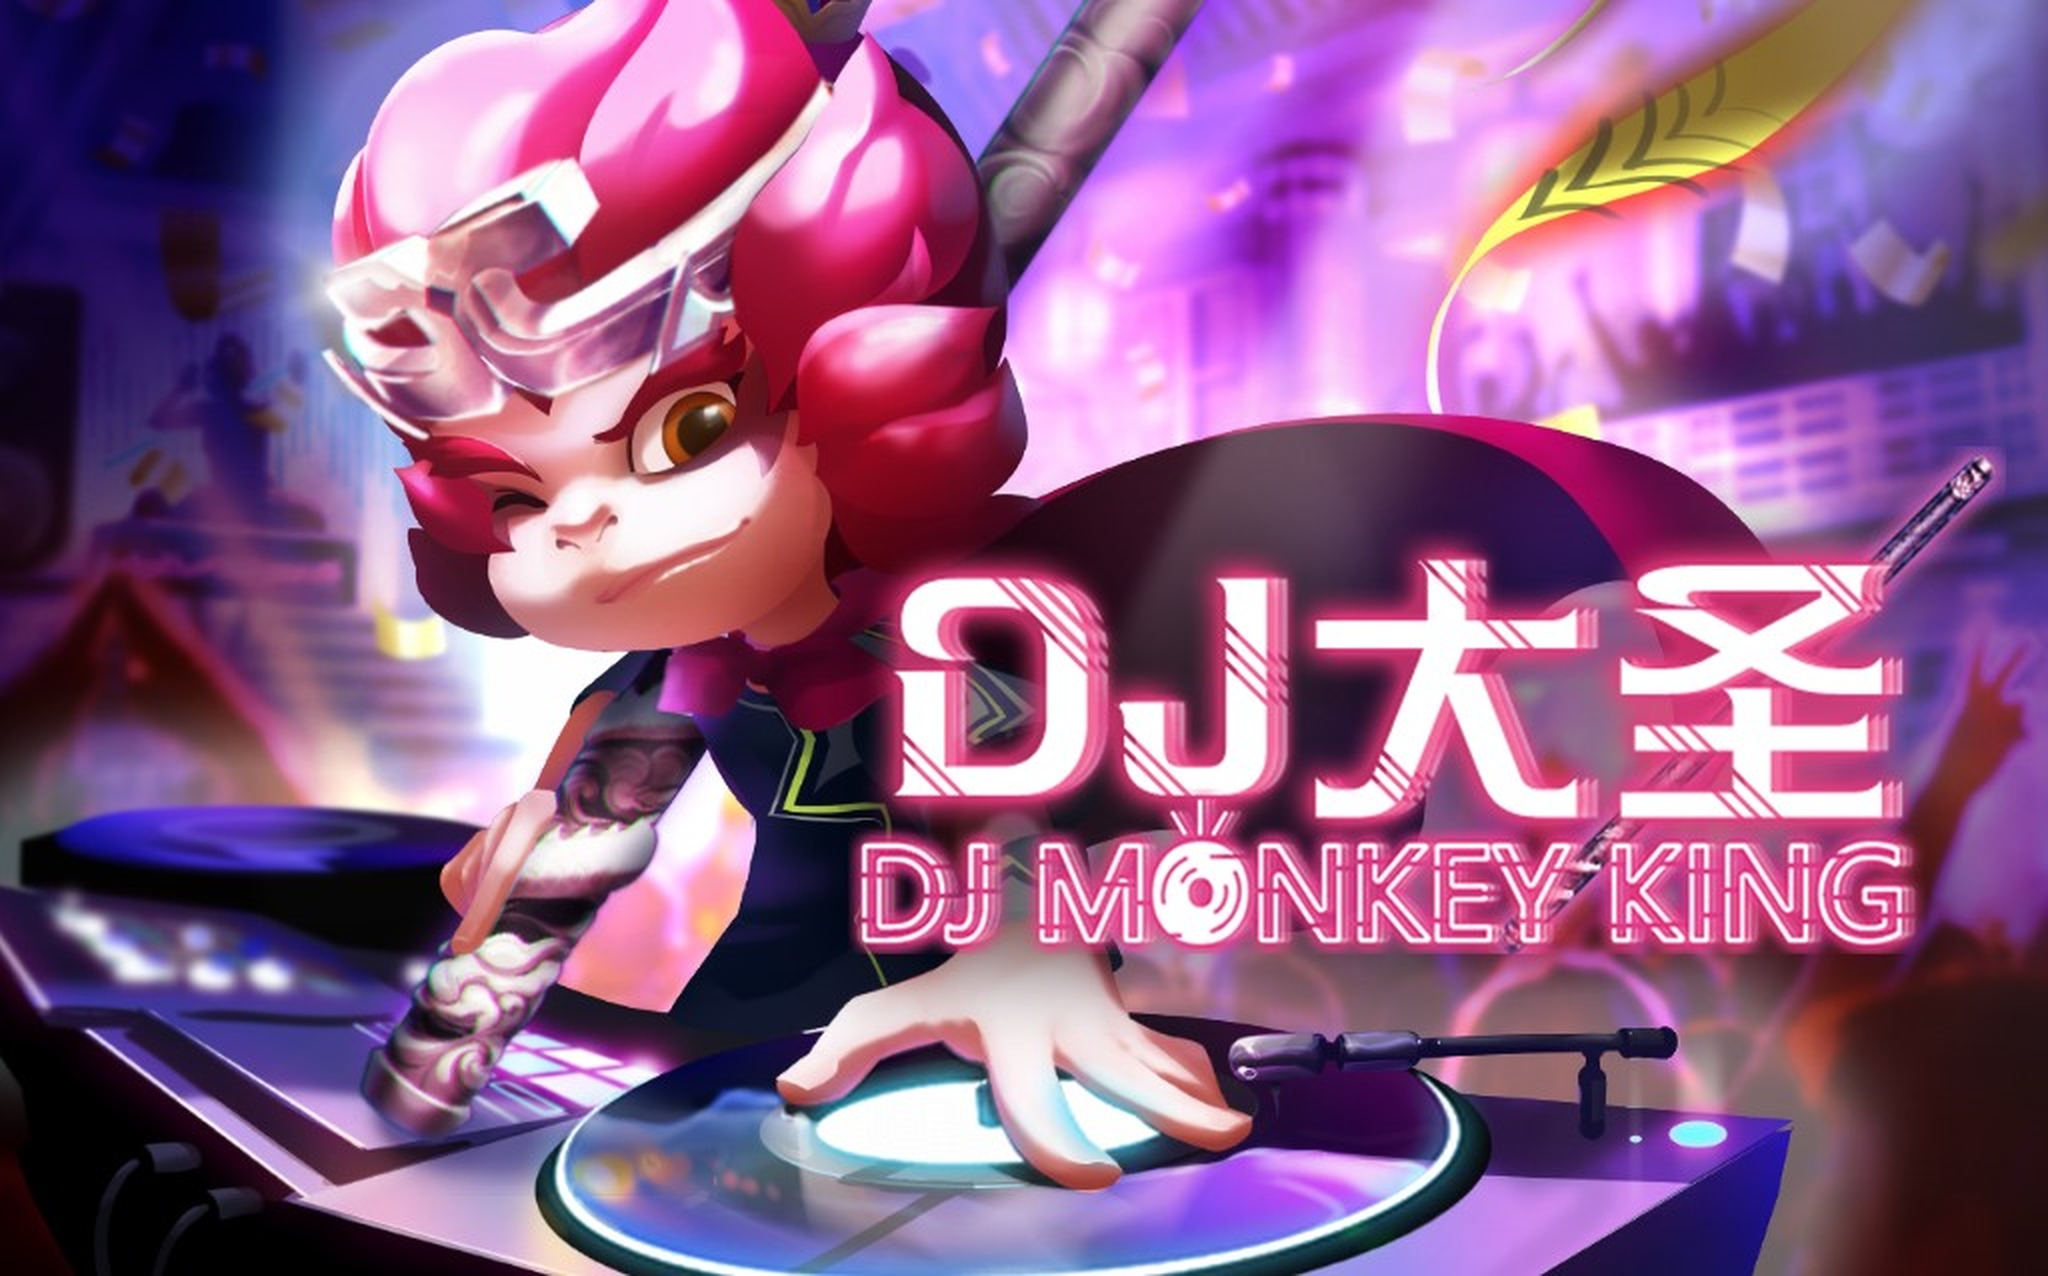 The DJ Monkey King Online Slot Demo Game by AllWaySpin